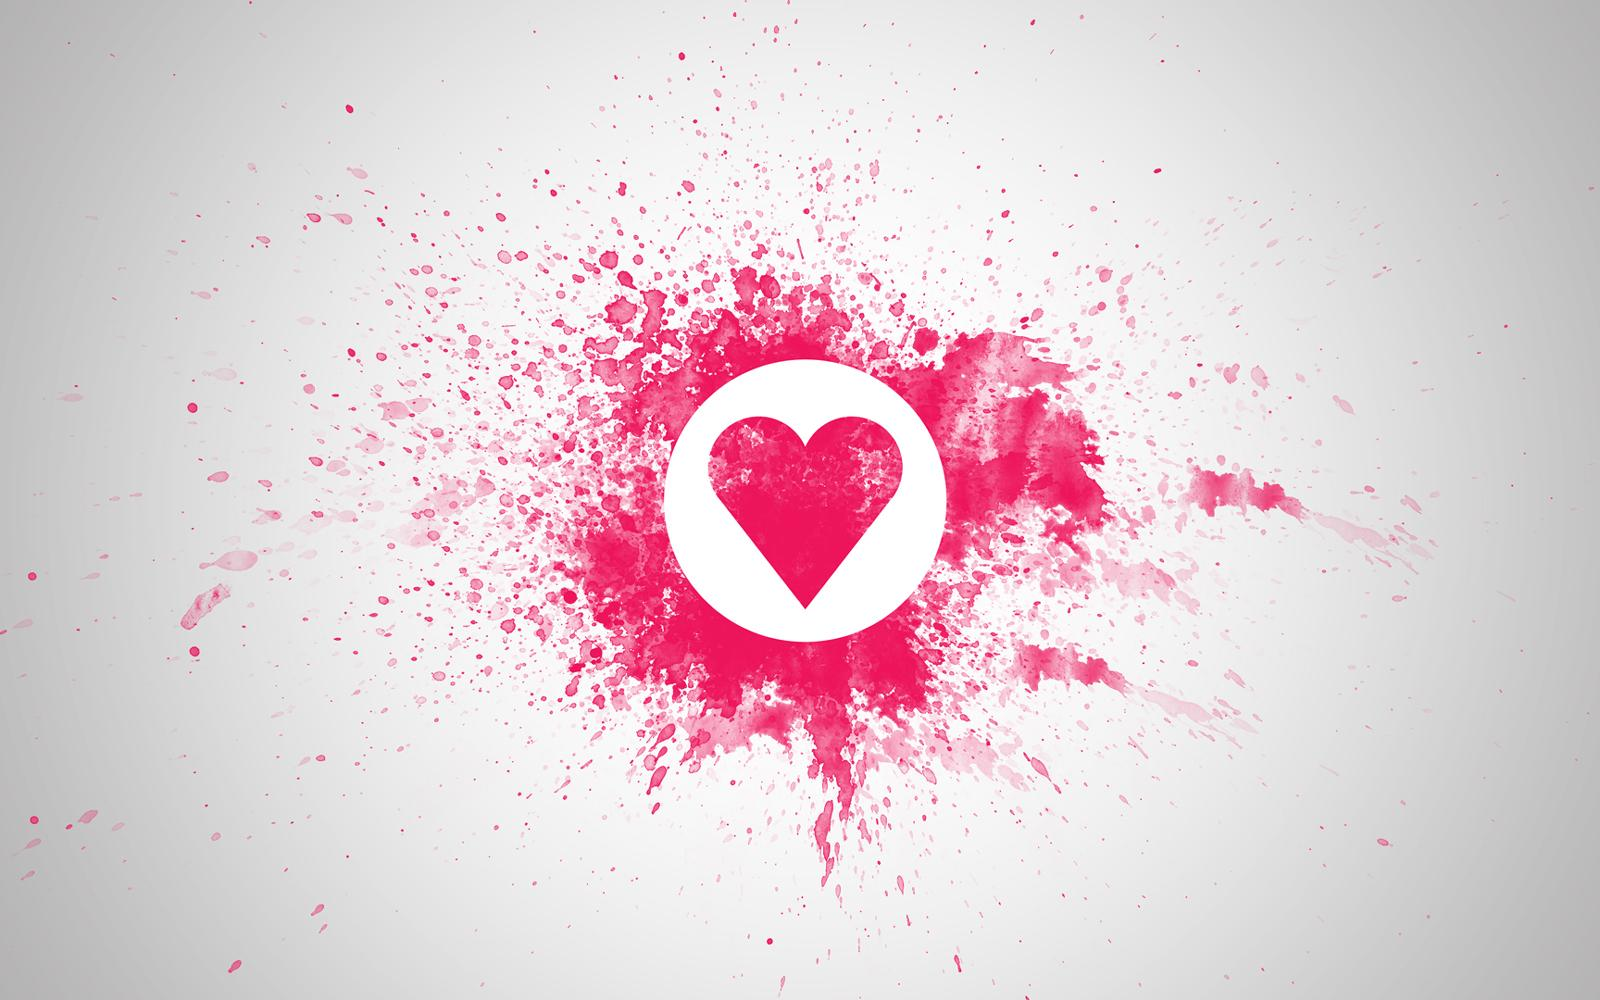 Love Wallpaper Download for Mobile - Here you can find best quality free love wallpaper for mobile